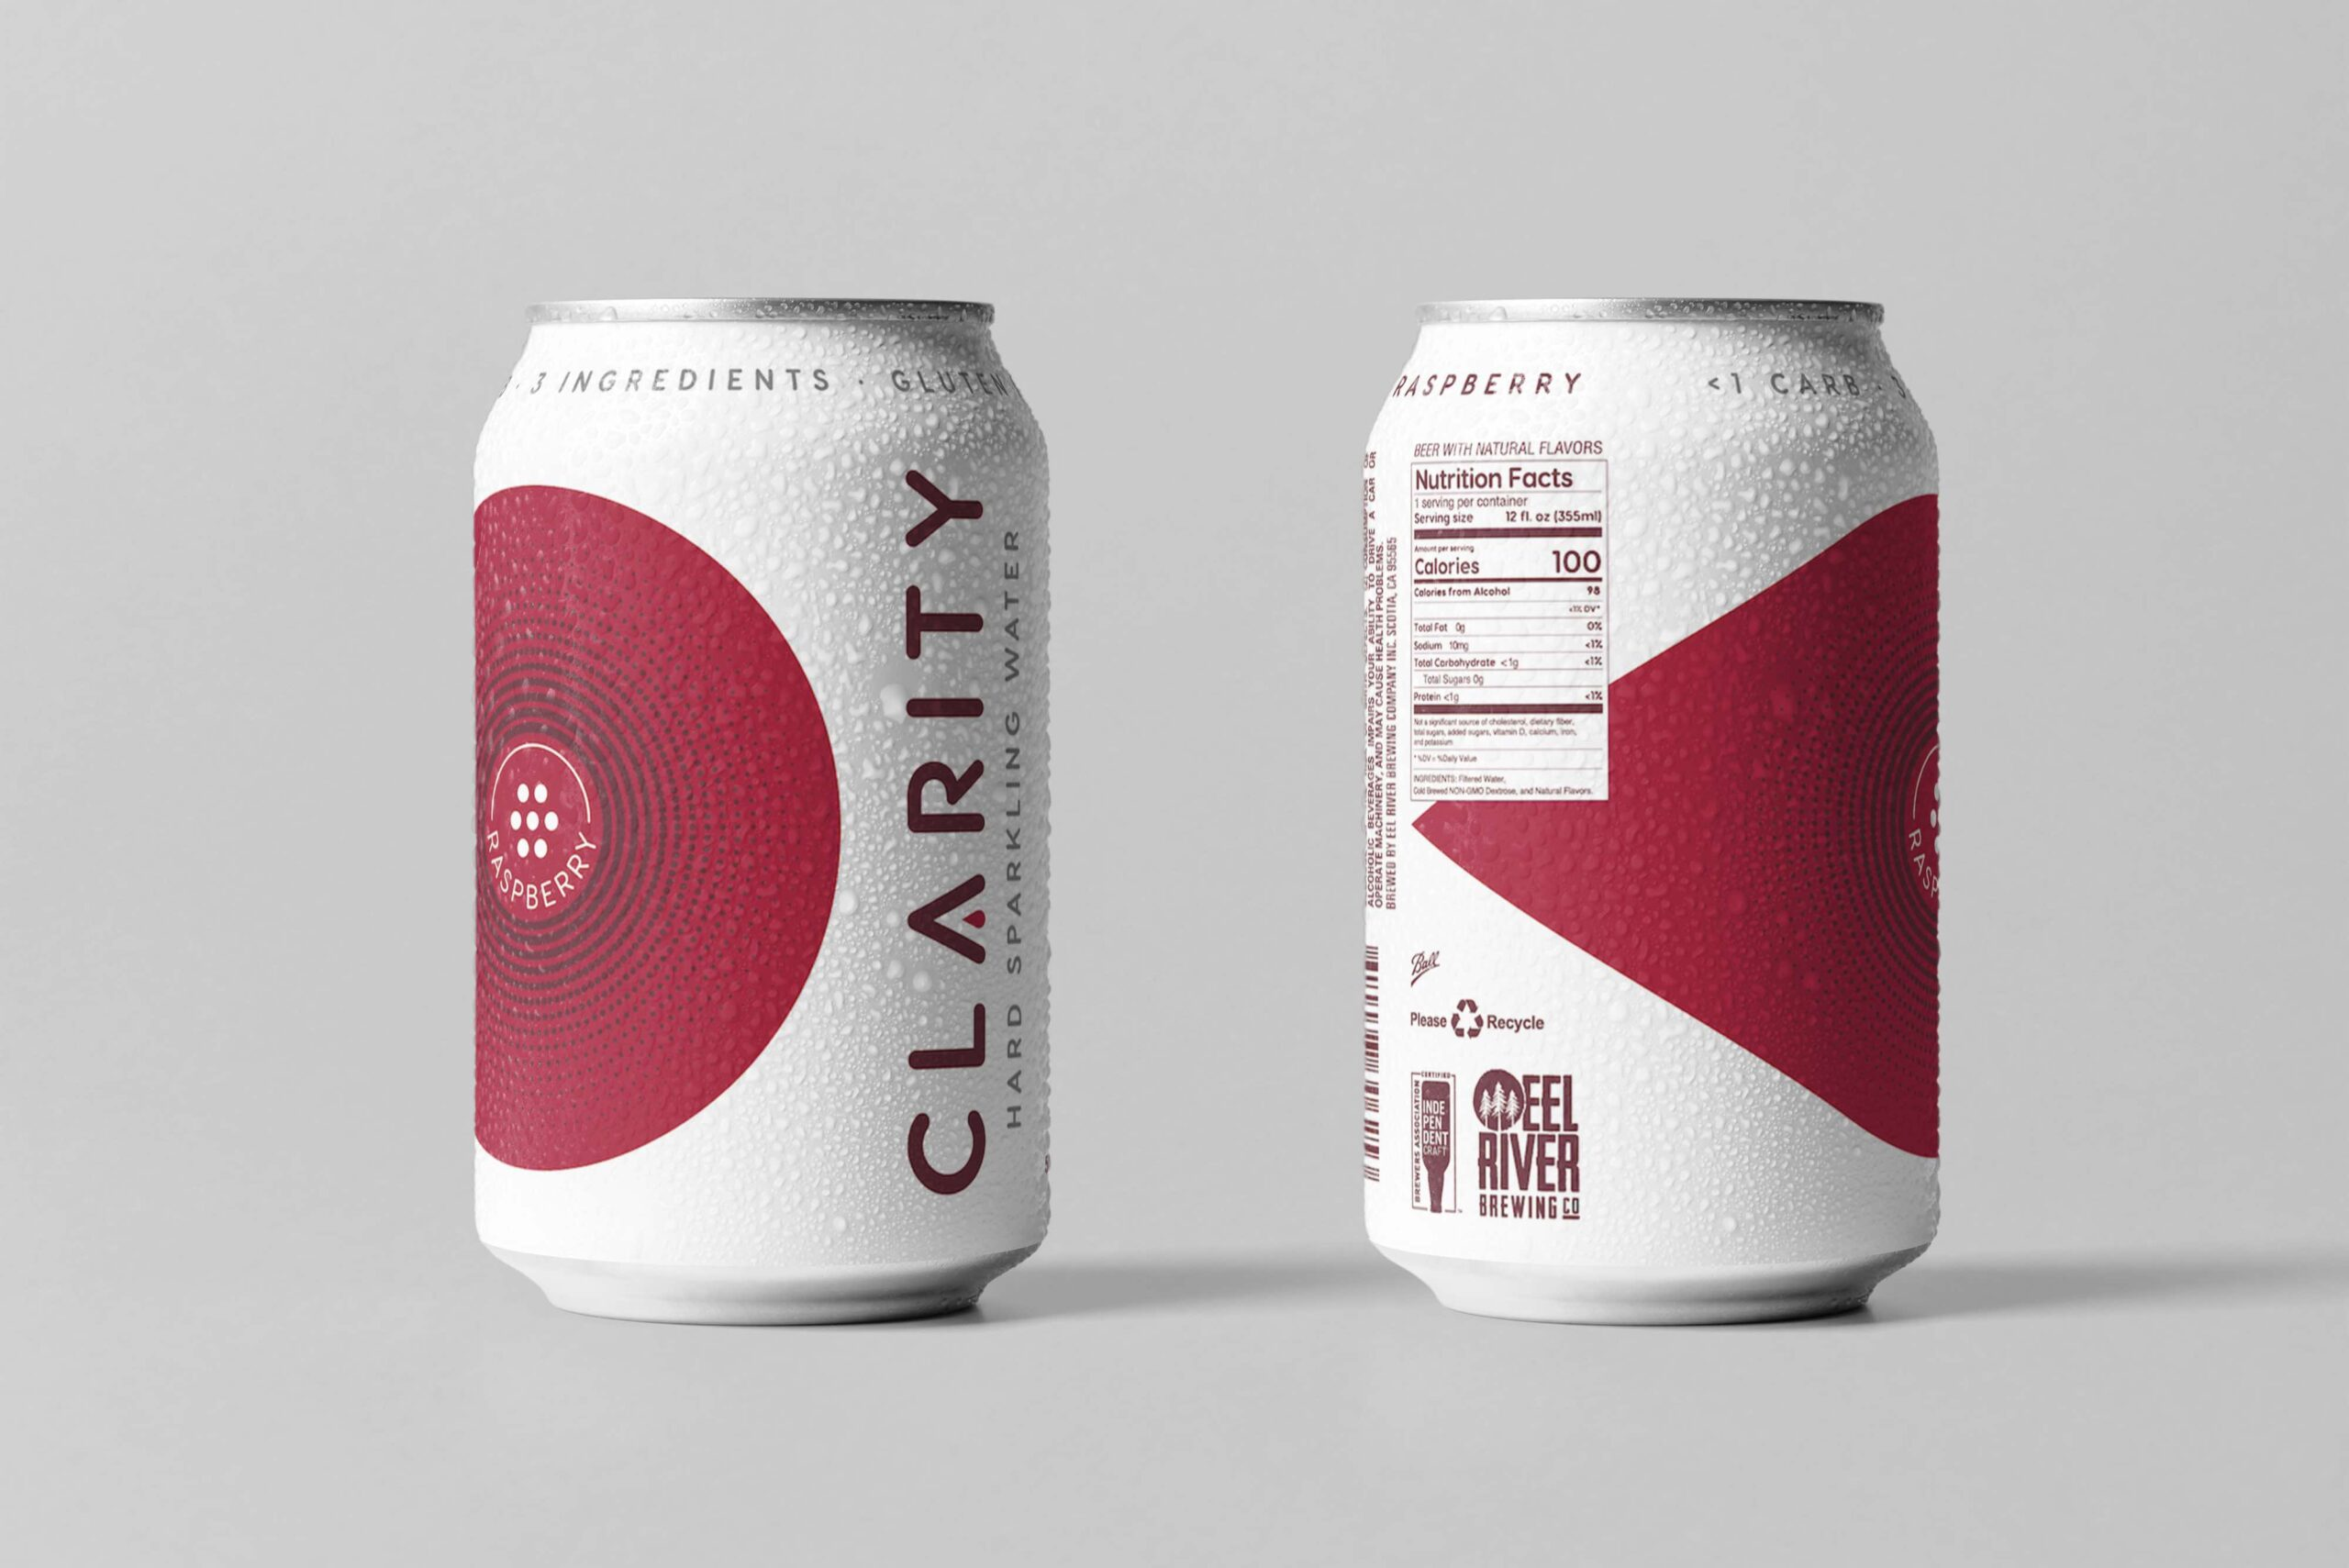 Clarity hard sparkling water raspberry can design concepts beer can design hard seltzer can design packaging design